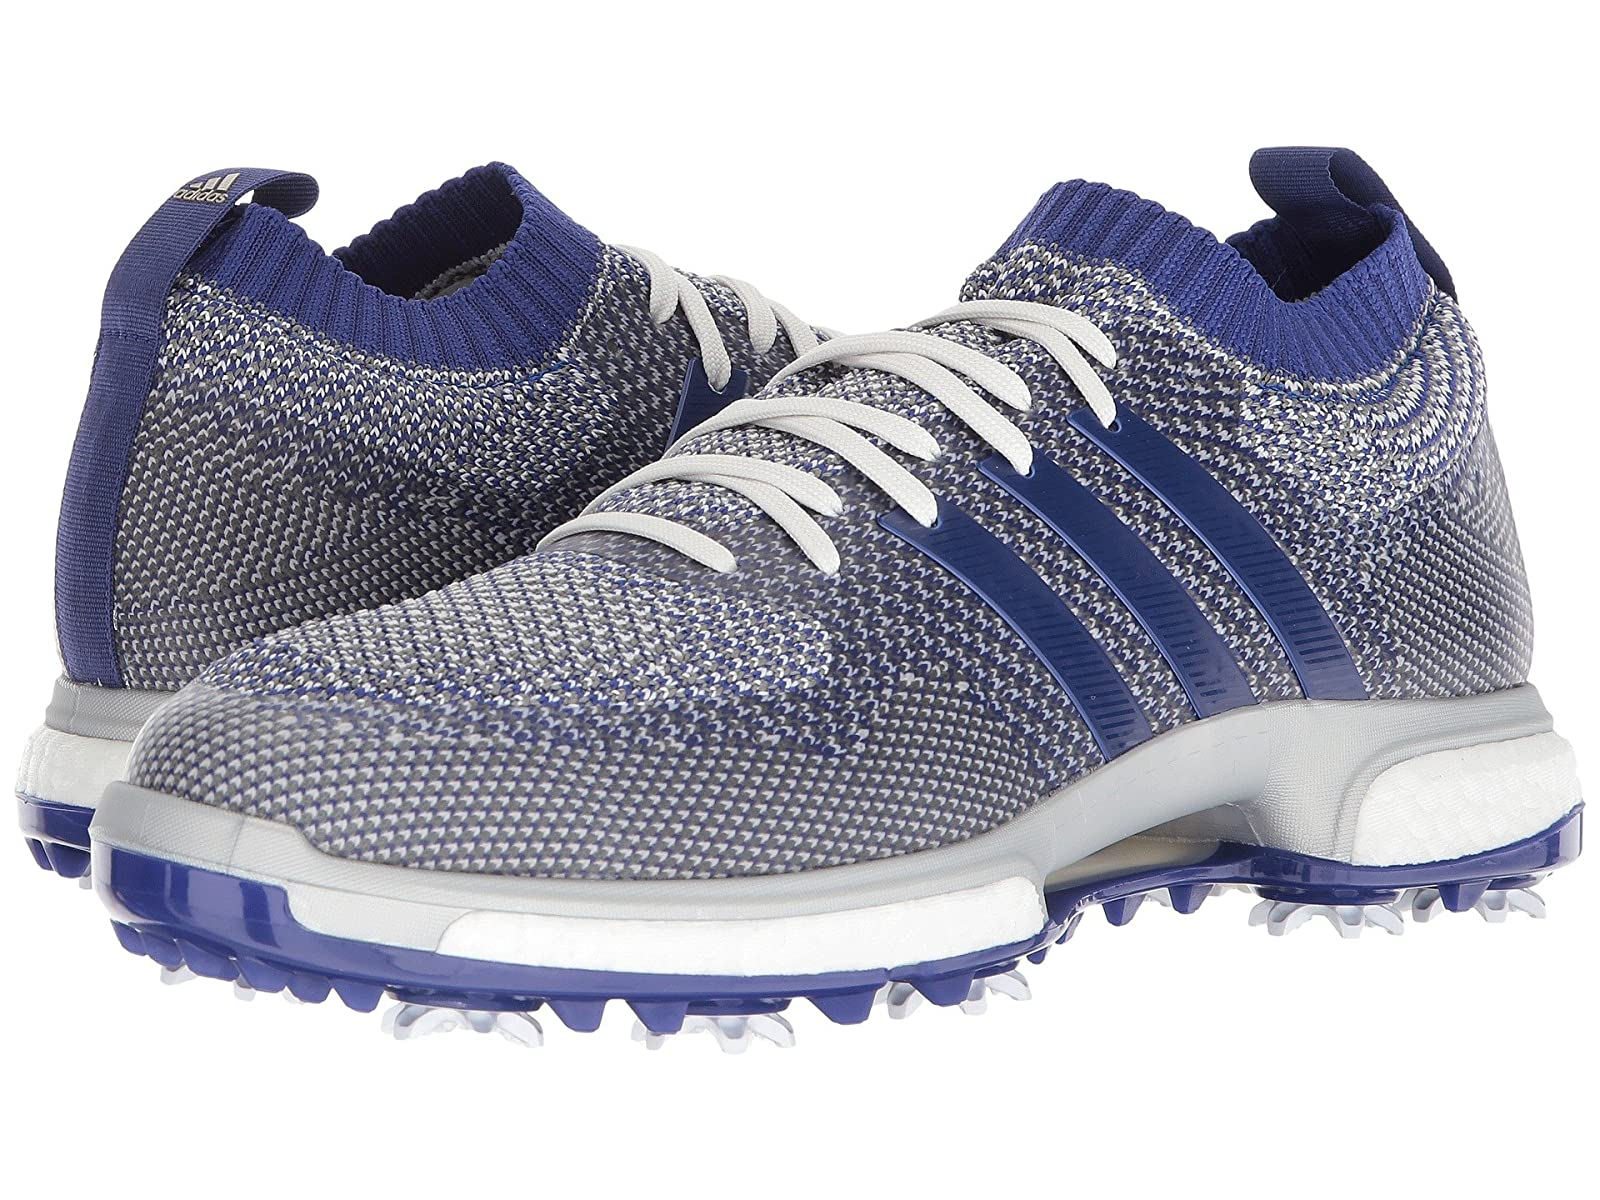 adidas Golf Tour360 KnitAtmospheric grades have affordable shoes